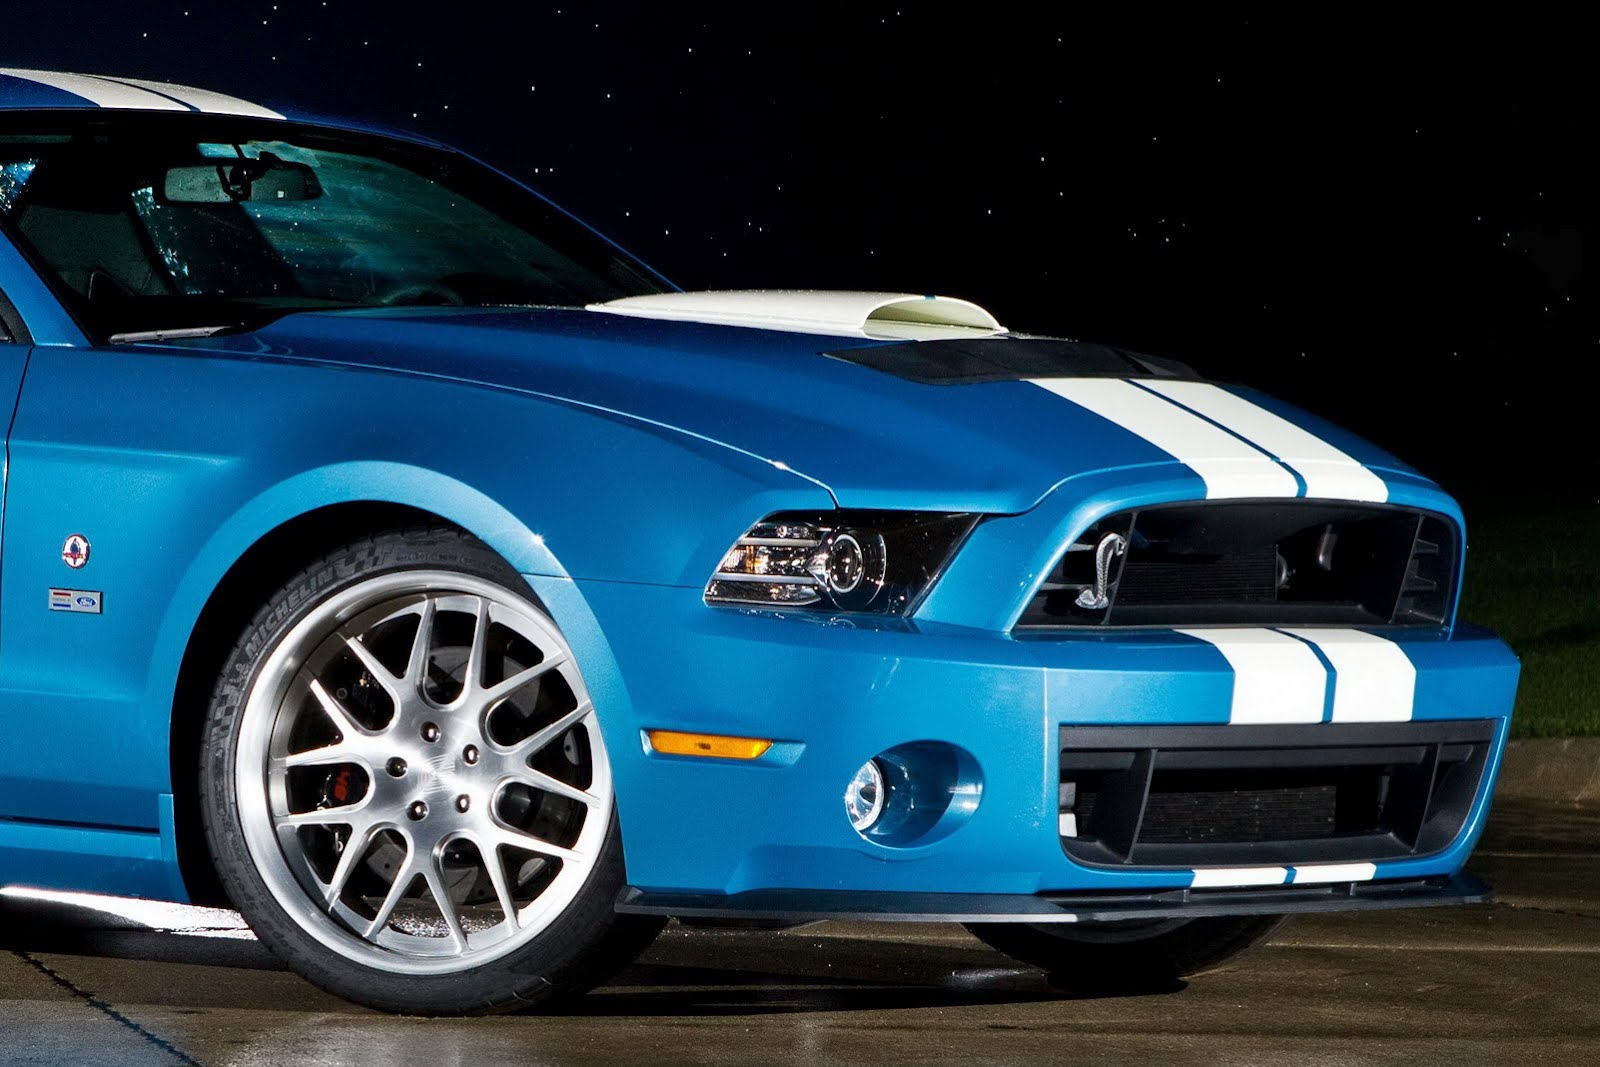 2013 Ford Shelby Cobra GT500